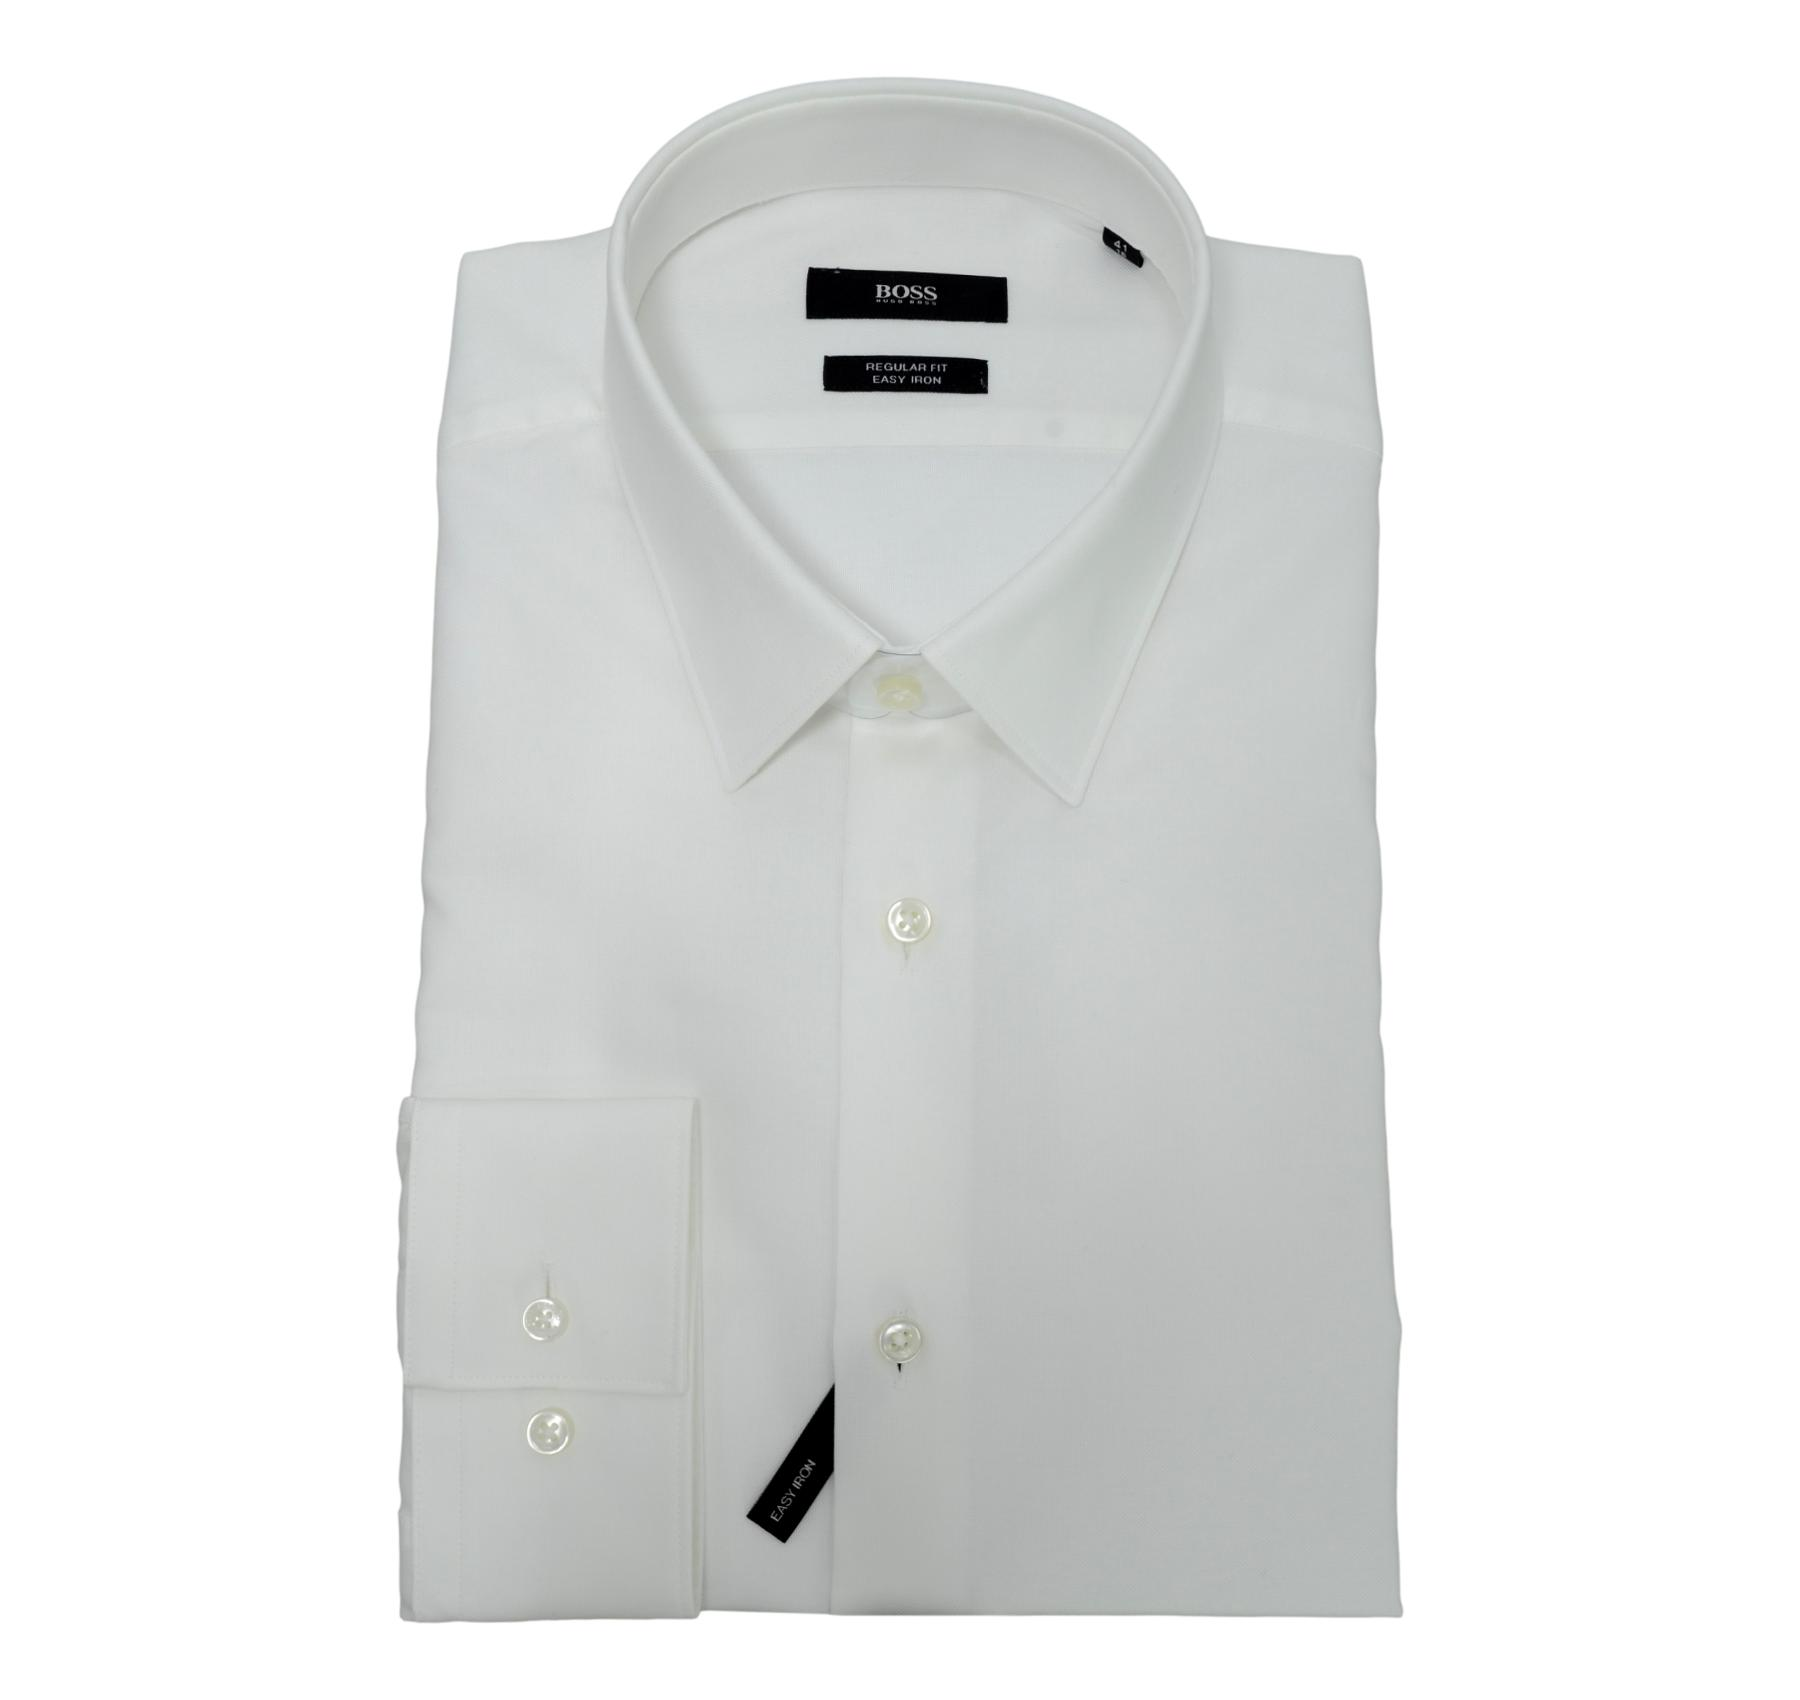 HUGO BOSS Camicia Regular Fit Cotone Facile stiro Mod. Eliott  50440439 Bianco